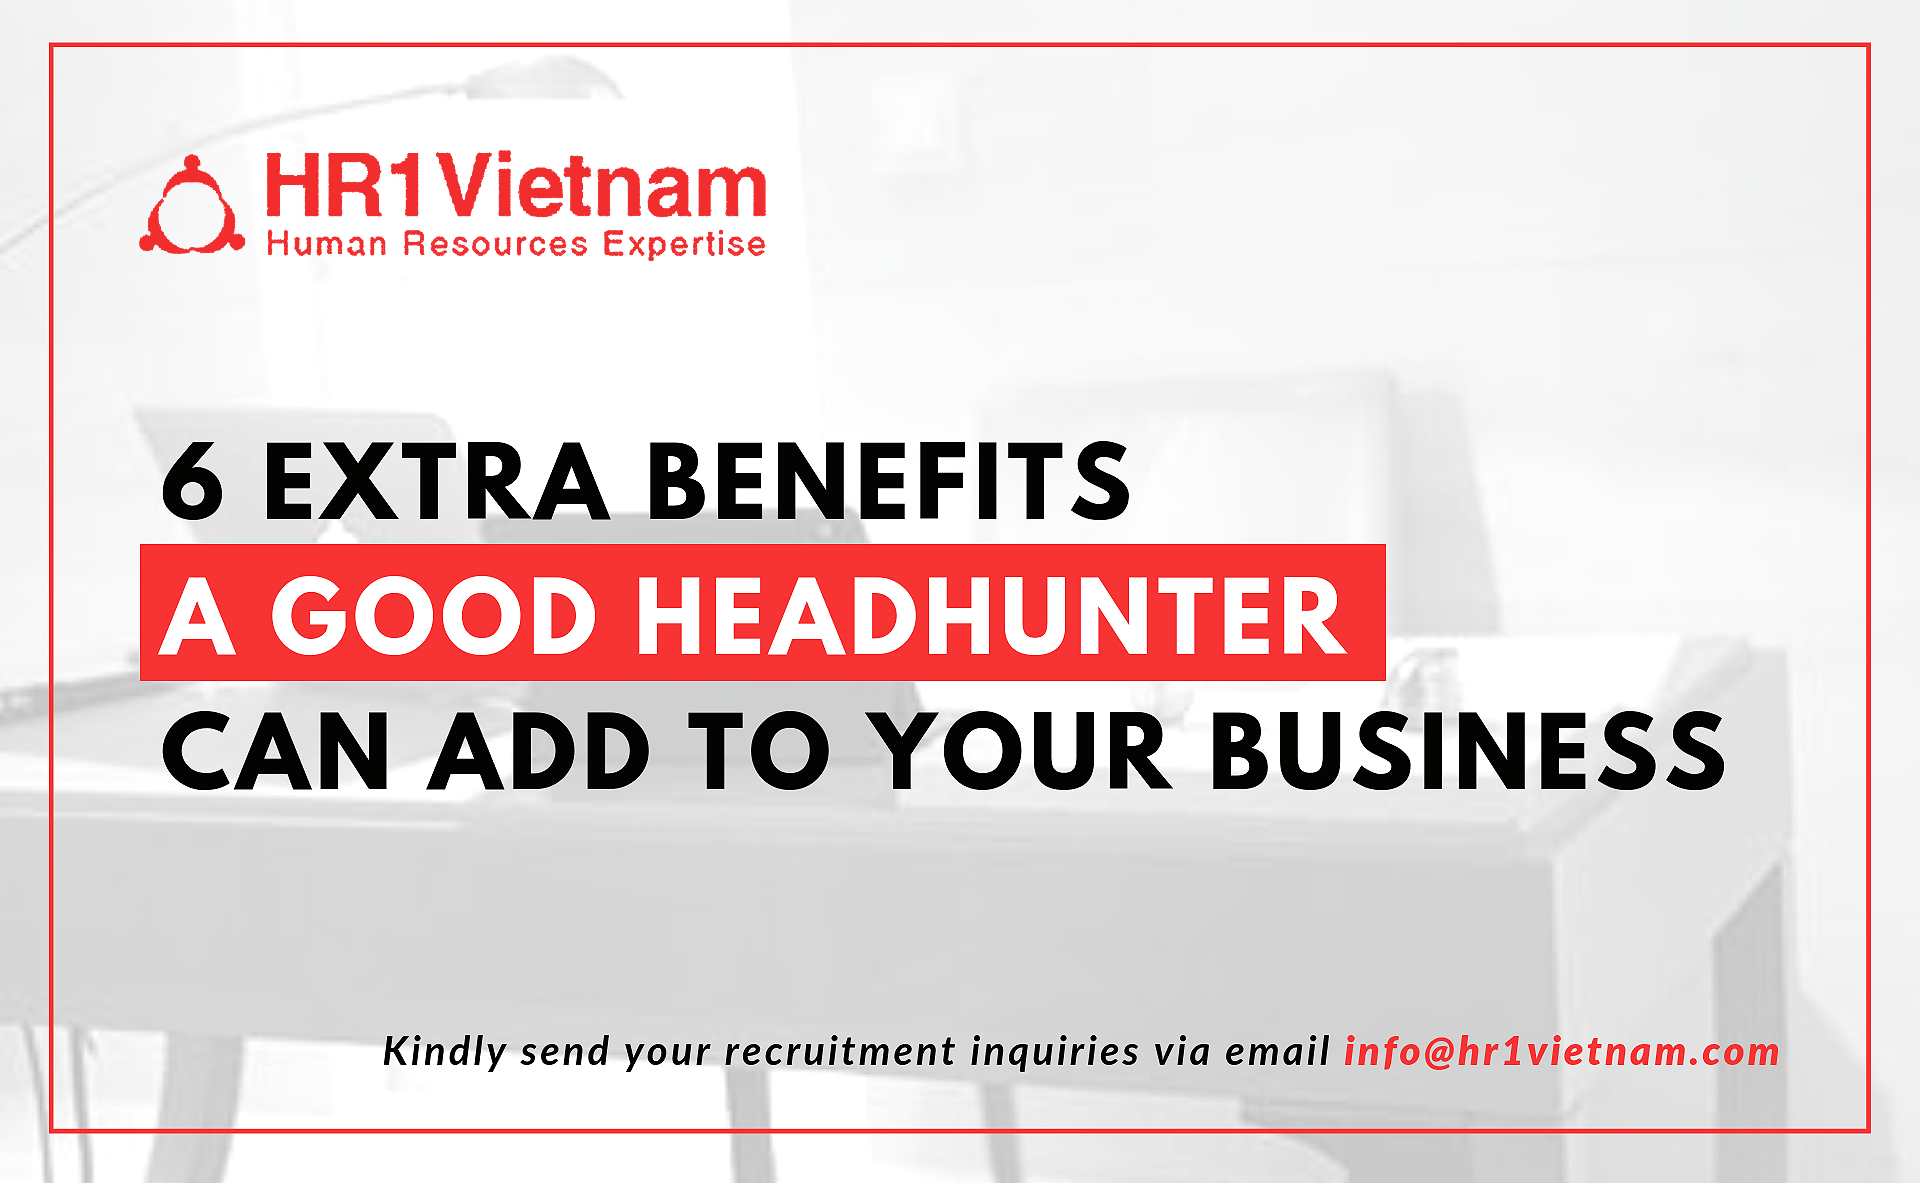 Beyond the demand to fill a vacancy, there are some additional reasons where a headhunter can be a valuable resource in your search for a job candidate.